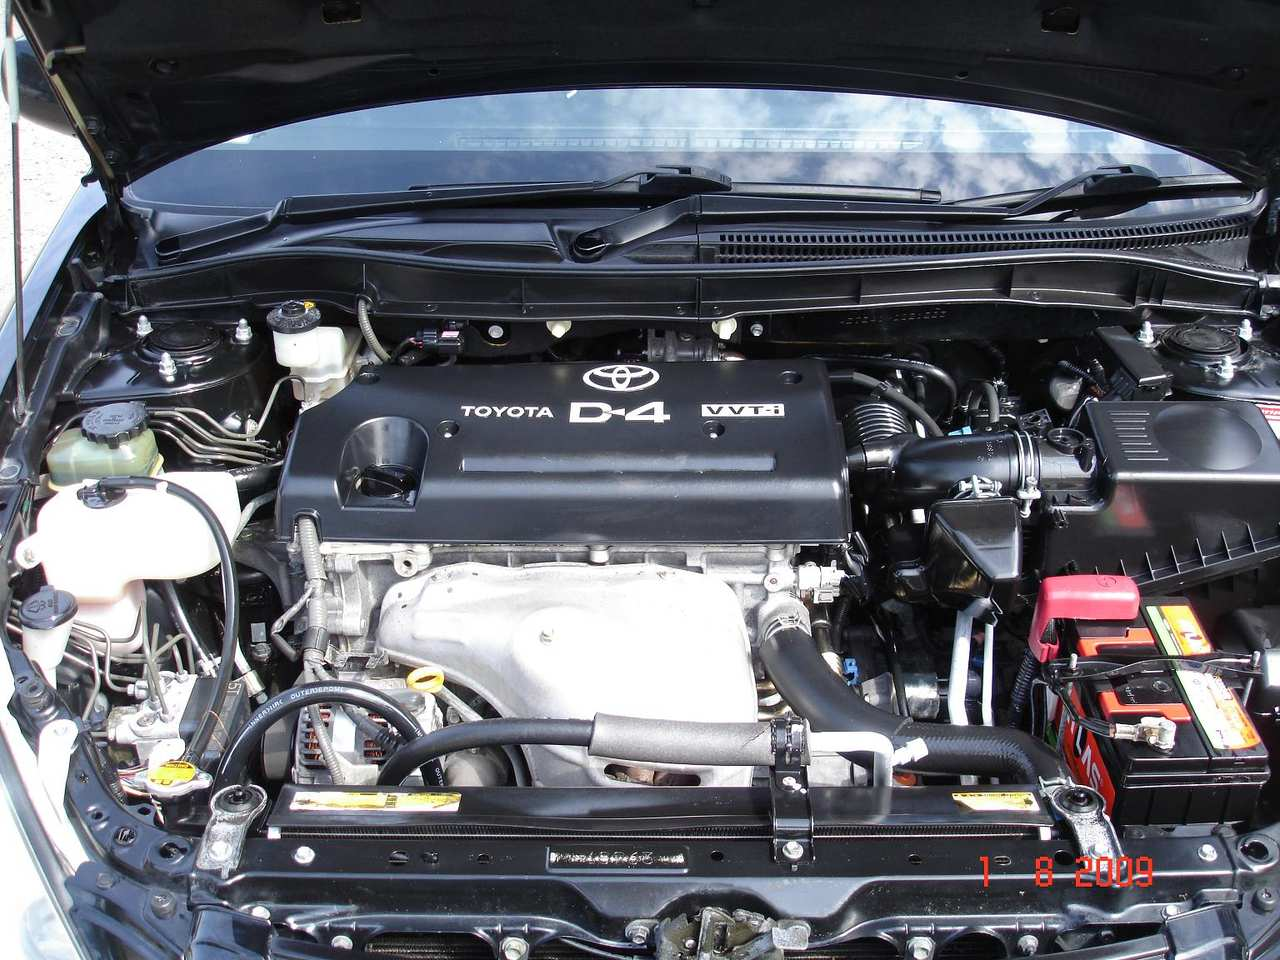 Toyota camry engine diagram chrysler town country